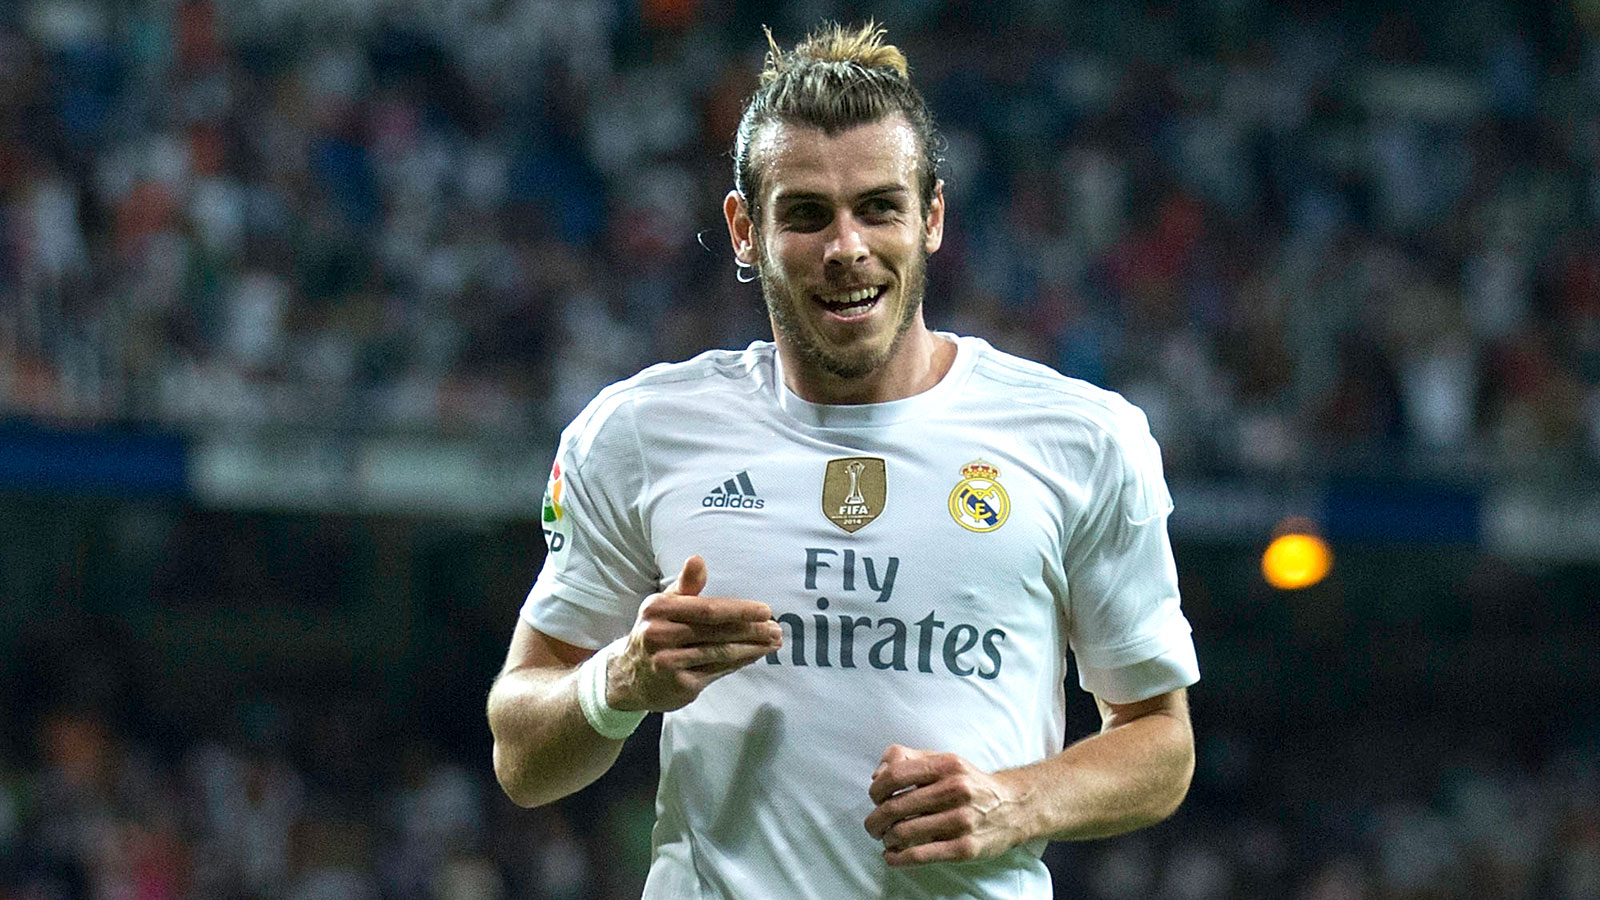 Real Madrid chief: Man United wanted Bale, Benzema, Varane